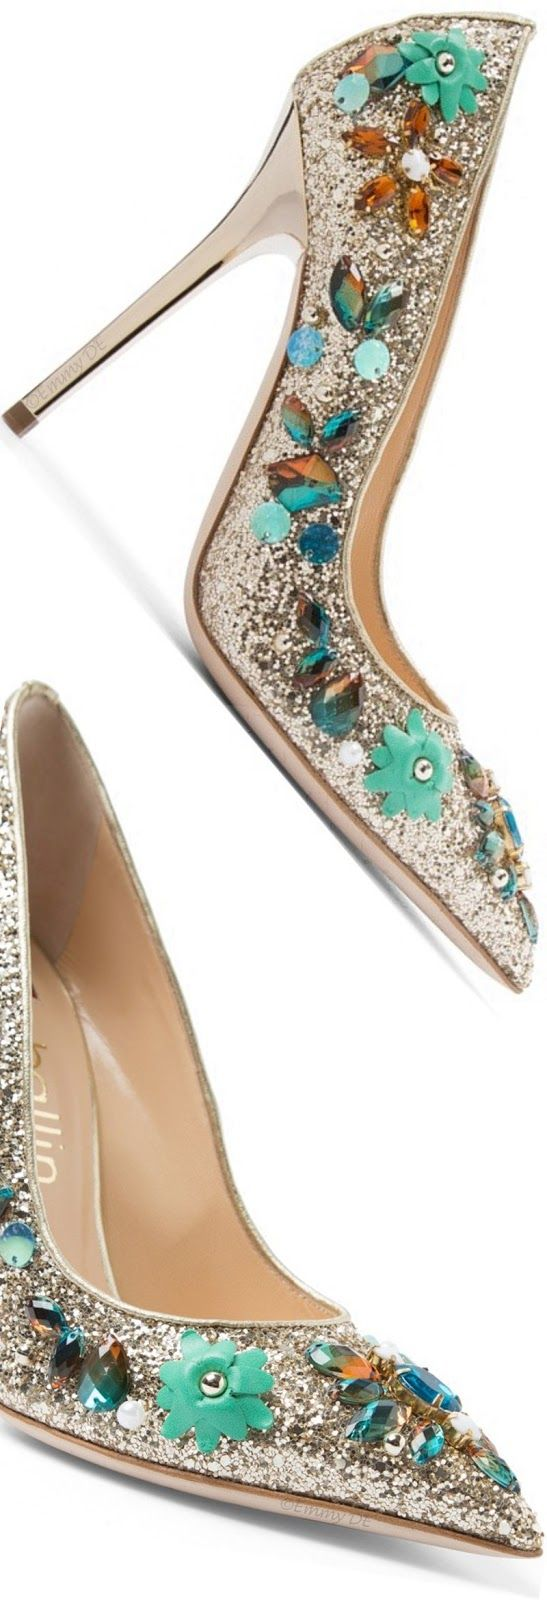 Brilliant Luxury ♦ Ballin 'Iris Blue' Pumps